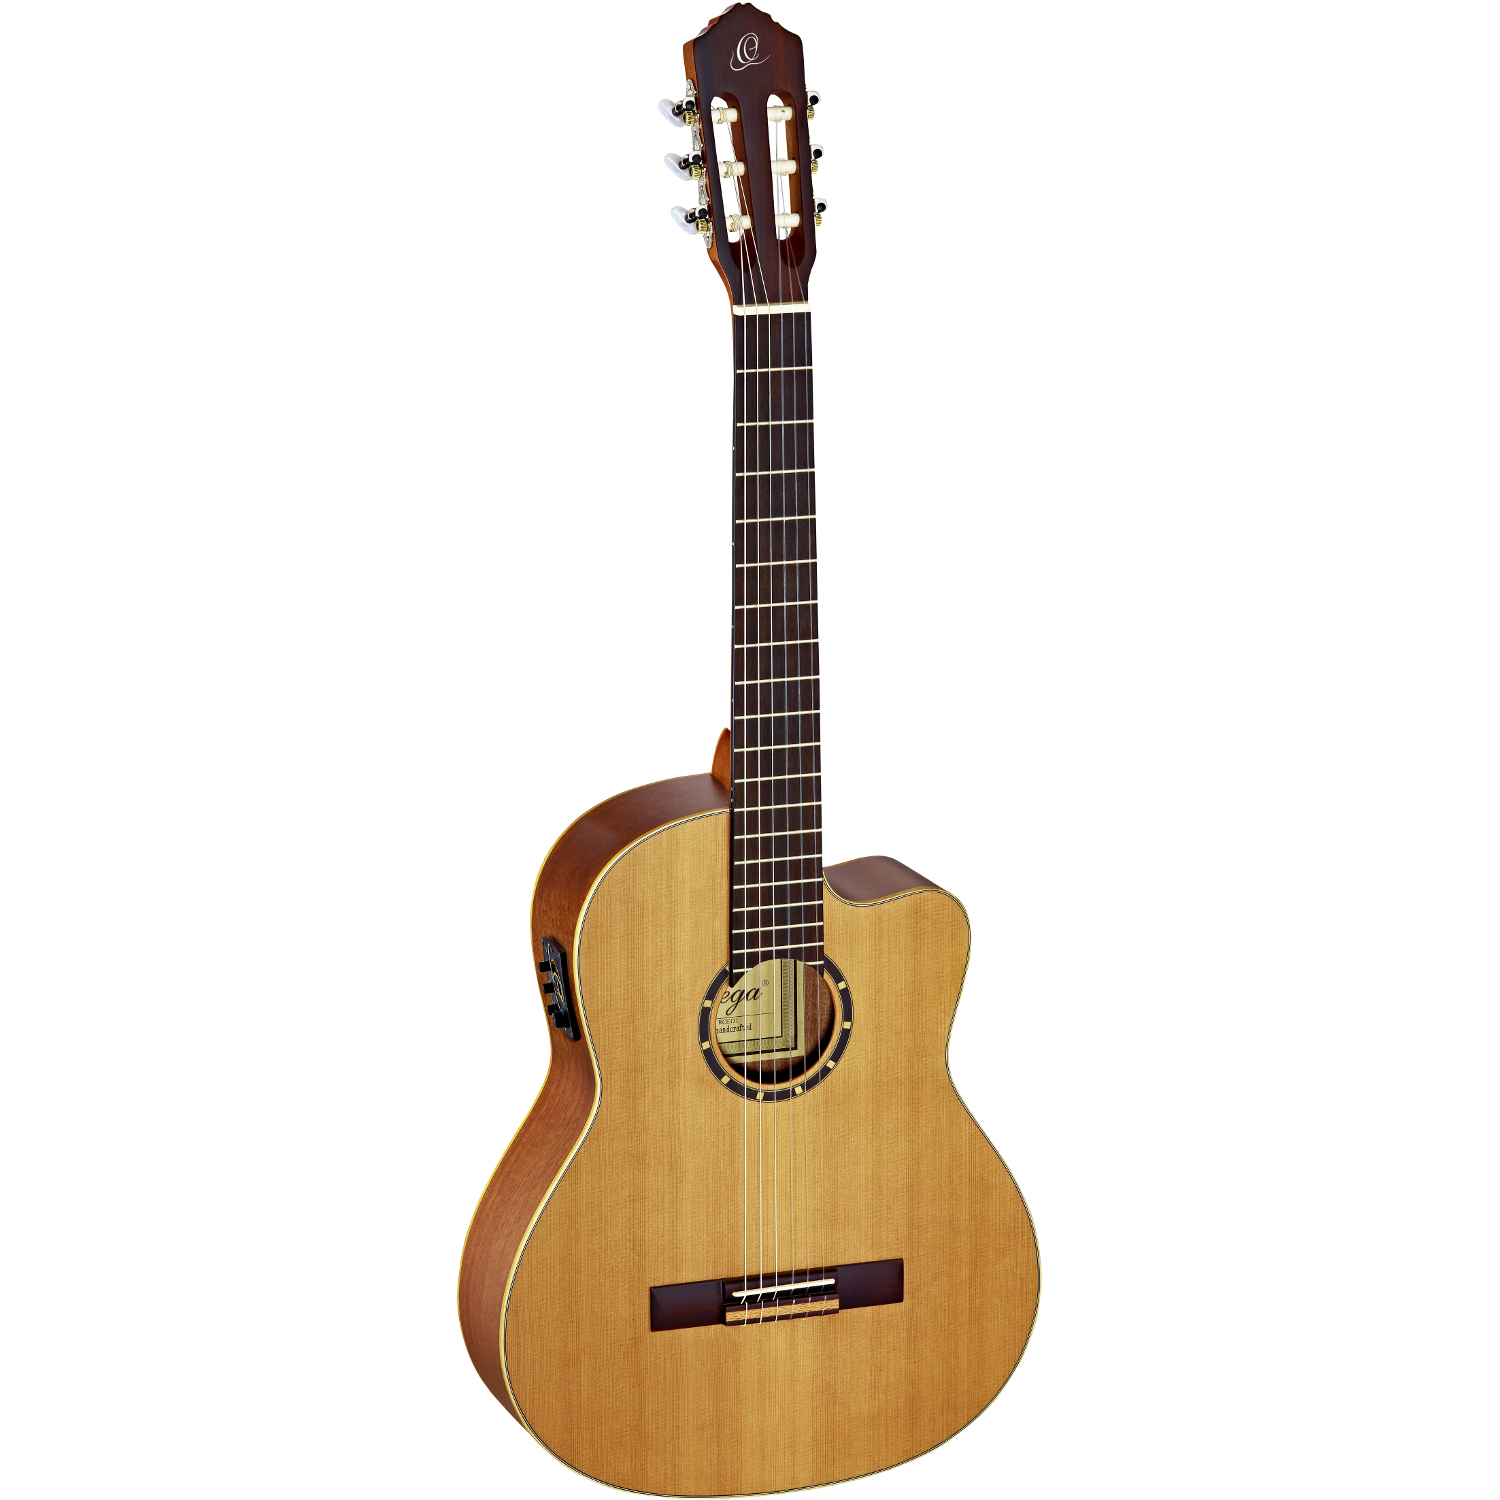 Ortega RCE131 Family Pro electro acoustic classical guitar, natural, with gig bag and strap